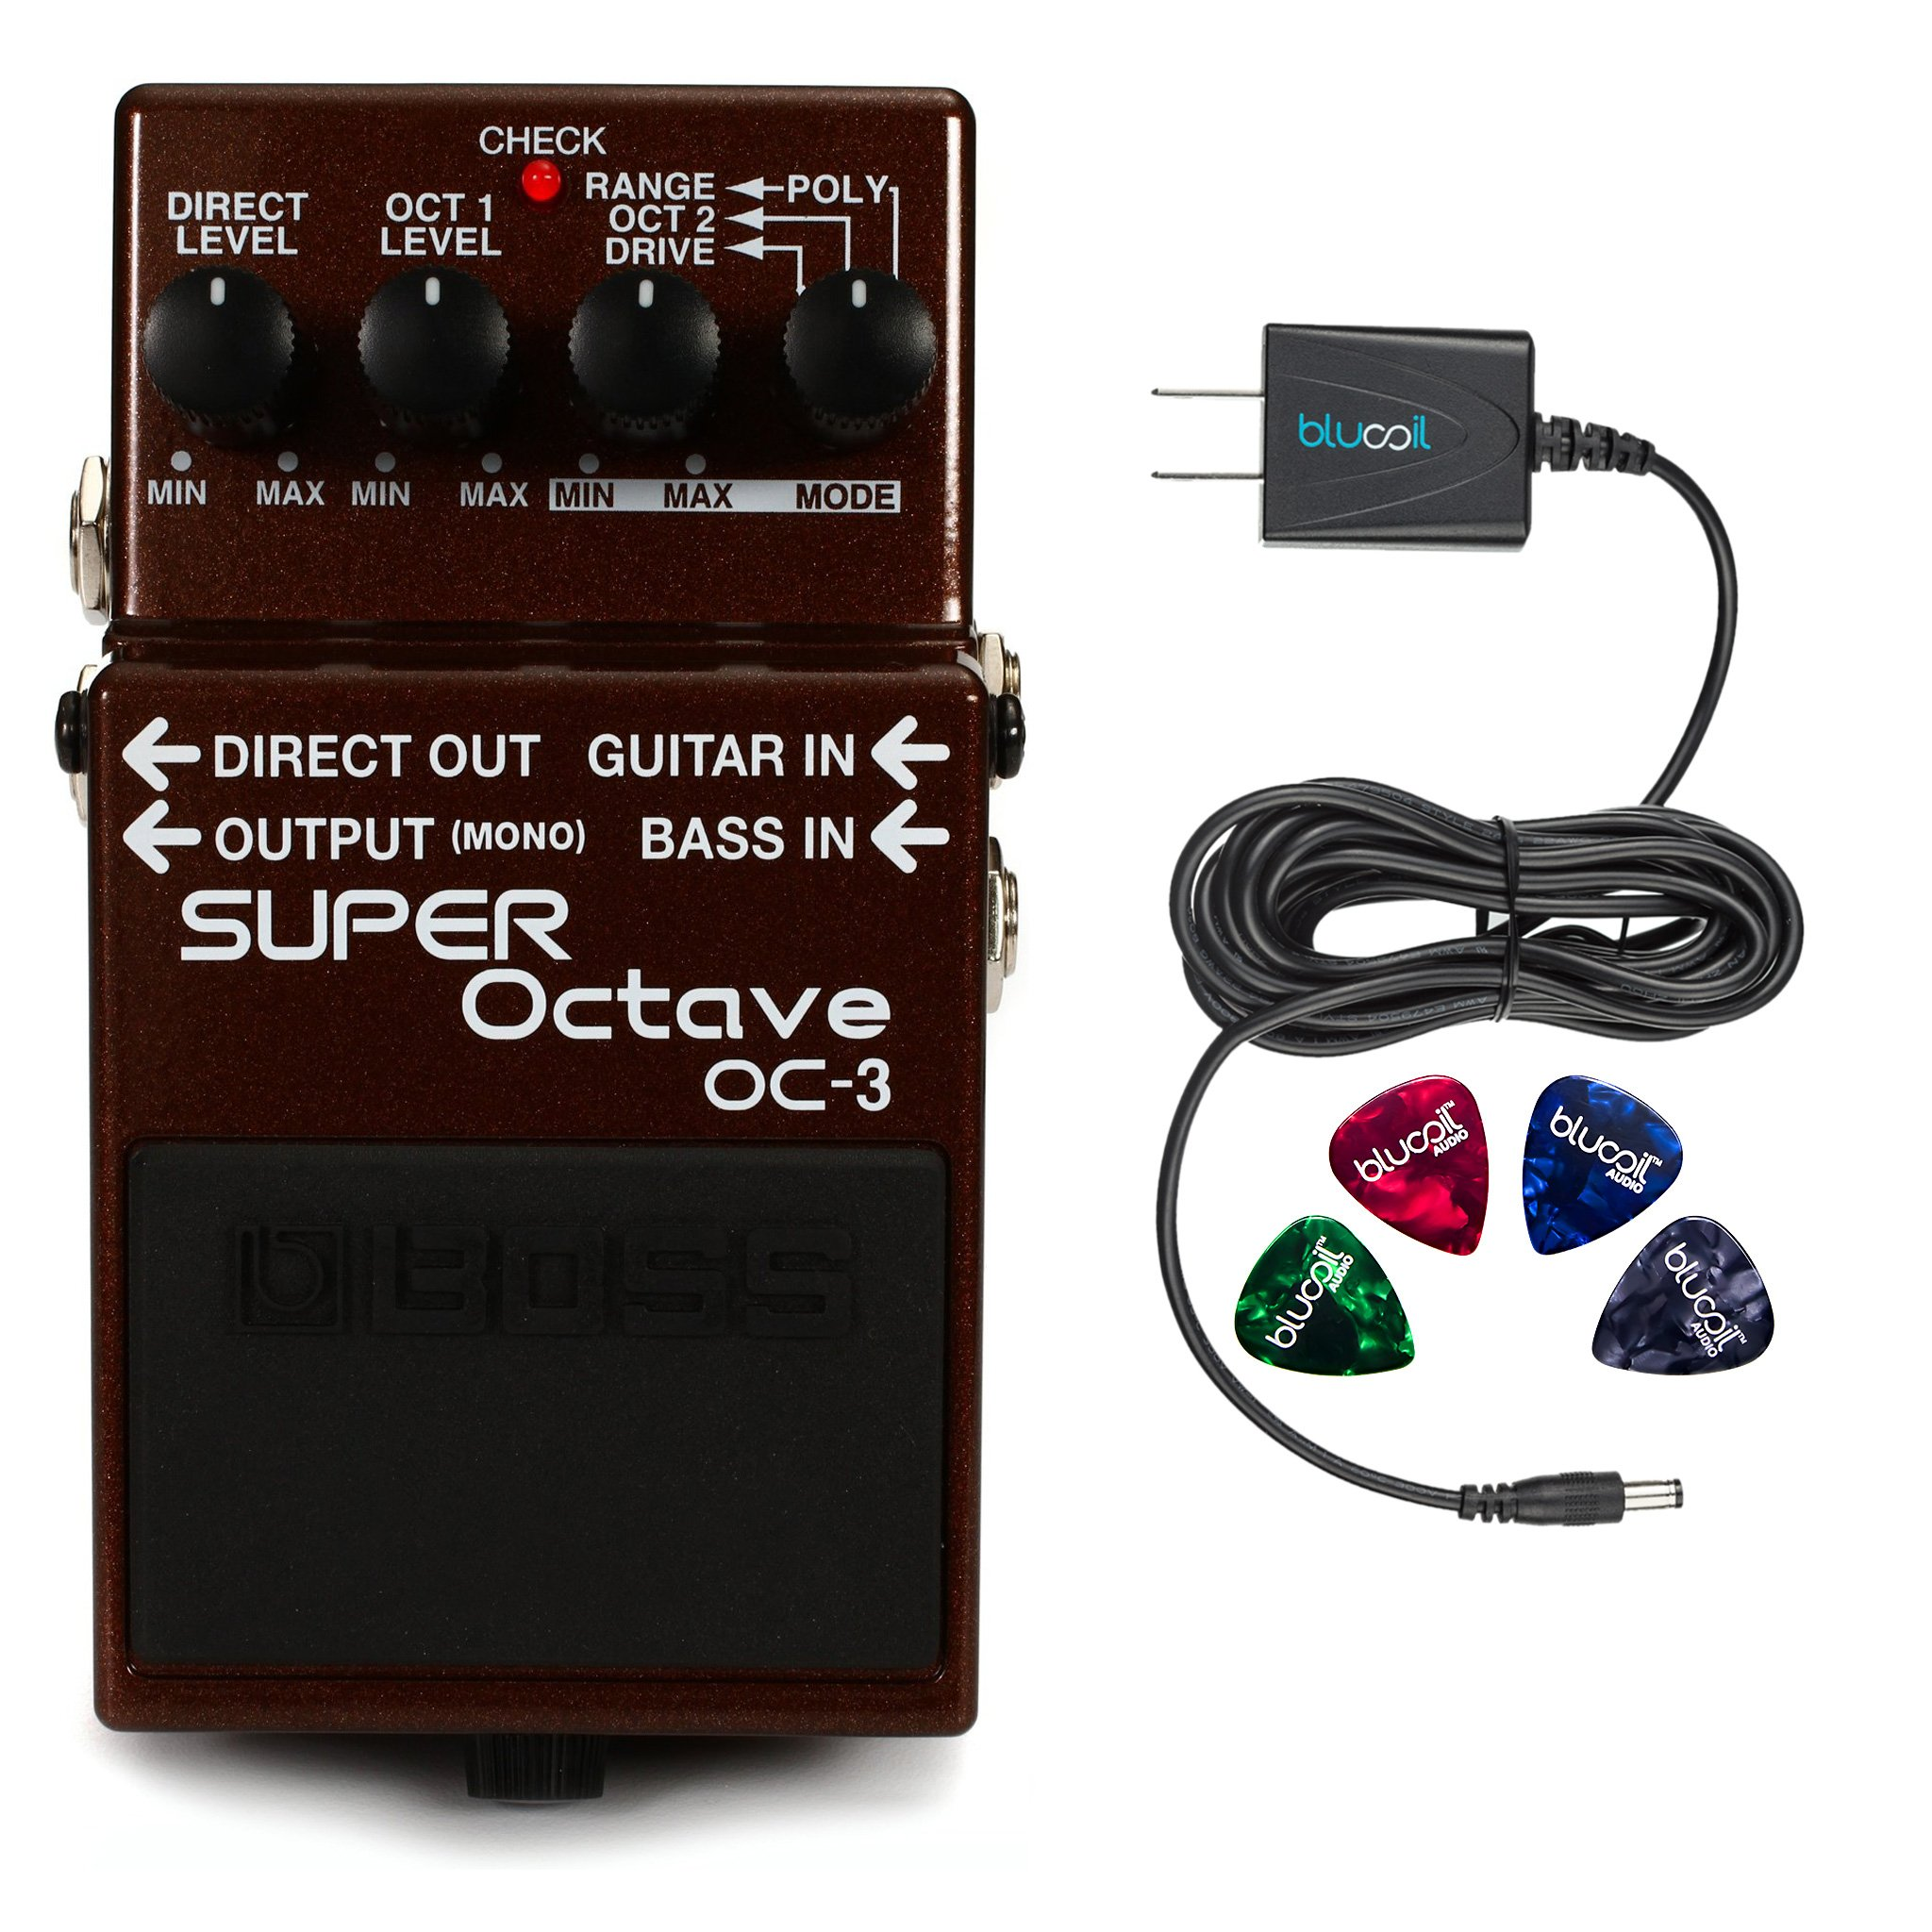 BOSS OC-3 Super Octave Pedal for Guitar or Bass -INCLUDES- Blucoil Power Supply Slim AC/DC Adapter for 9 Volt DC 670mA AND Blucoil Guitar Pick V2